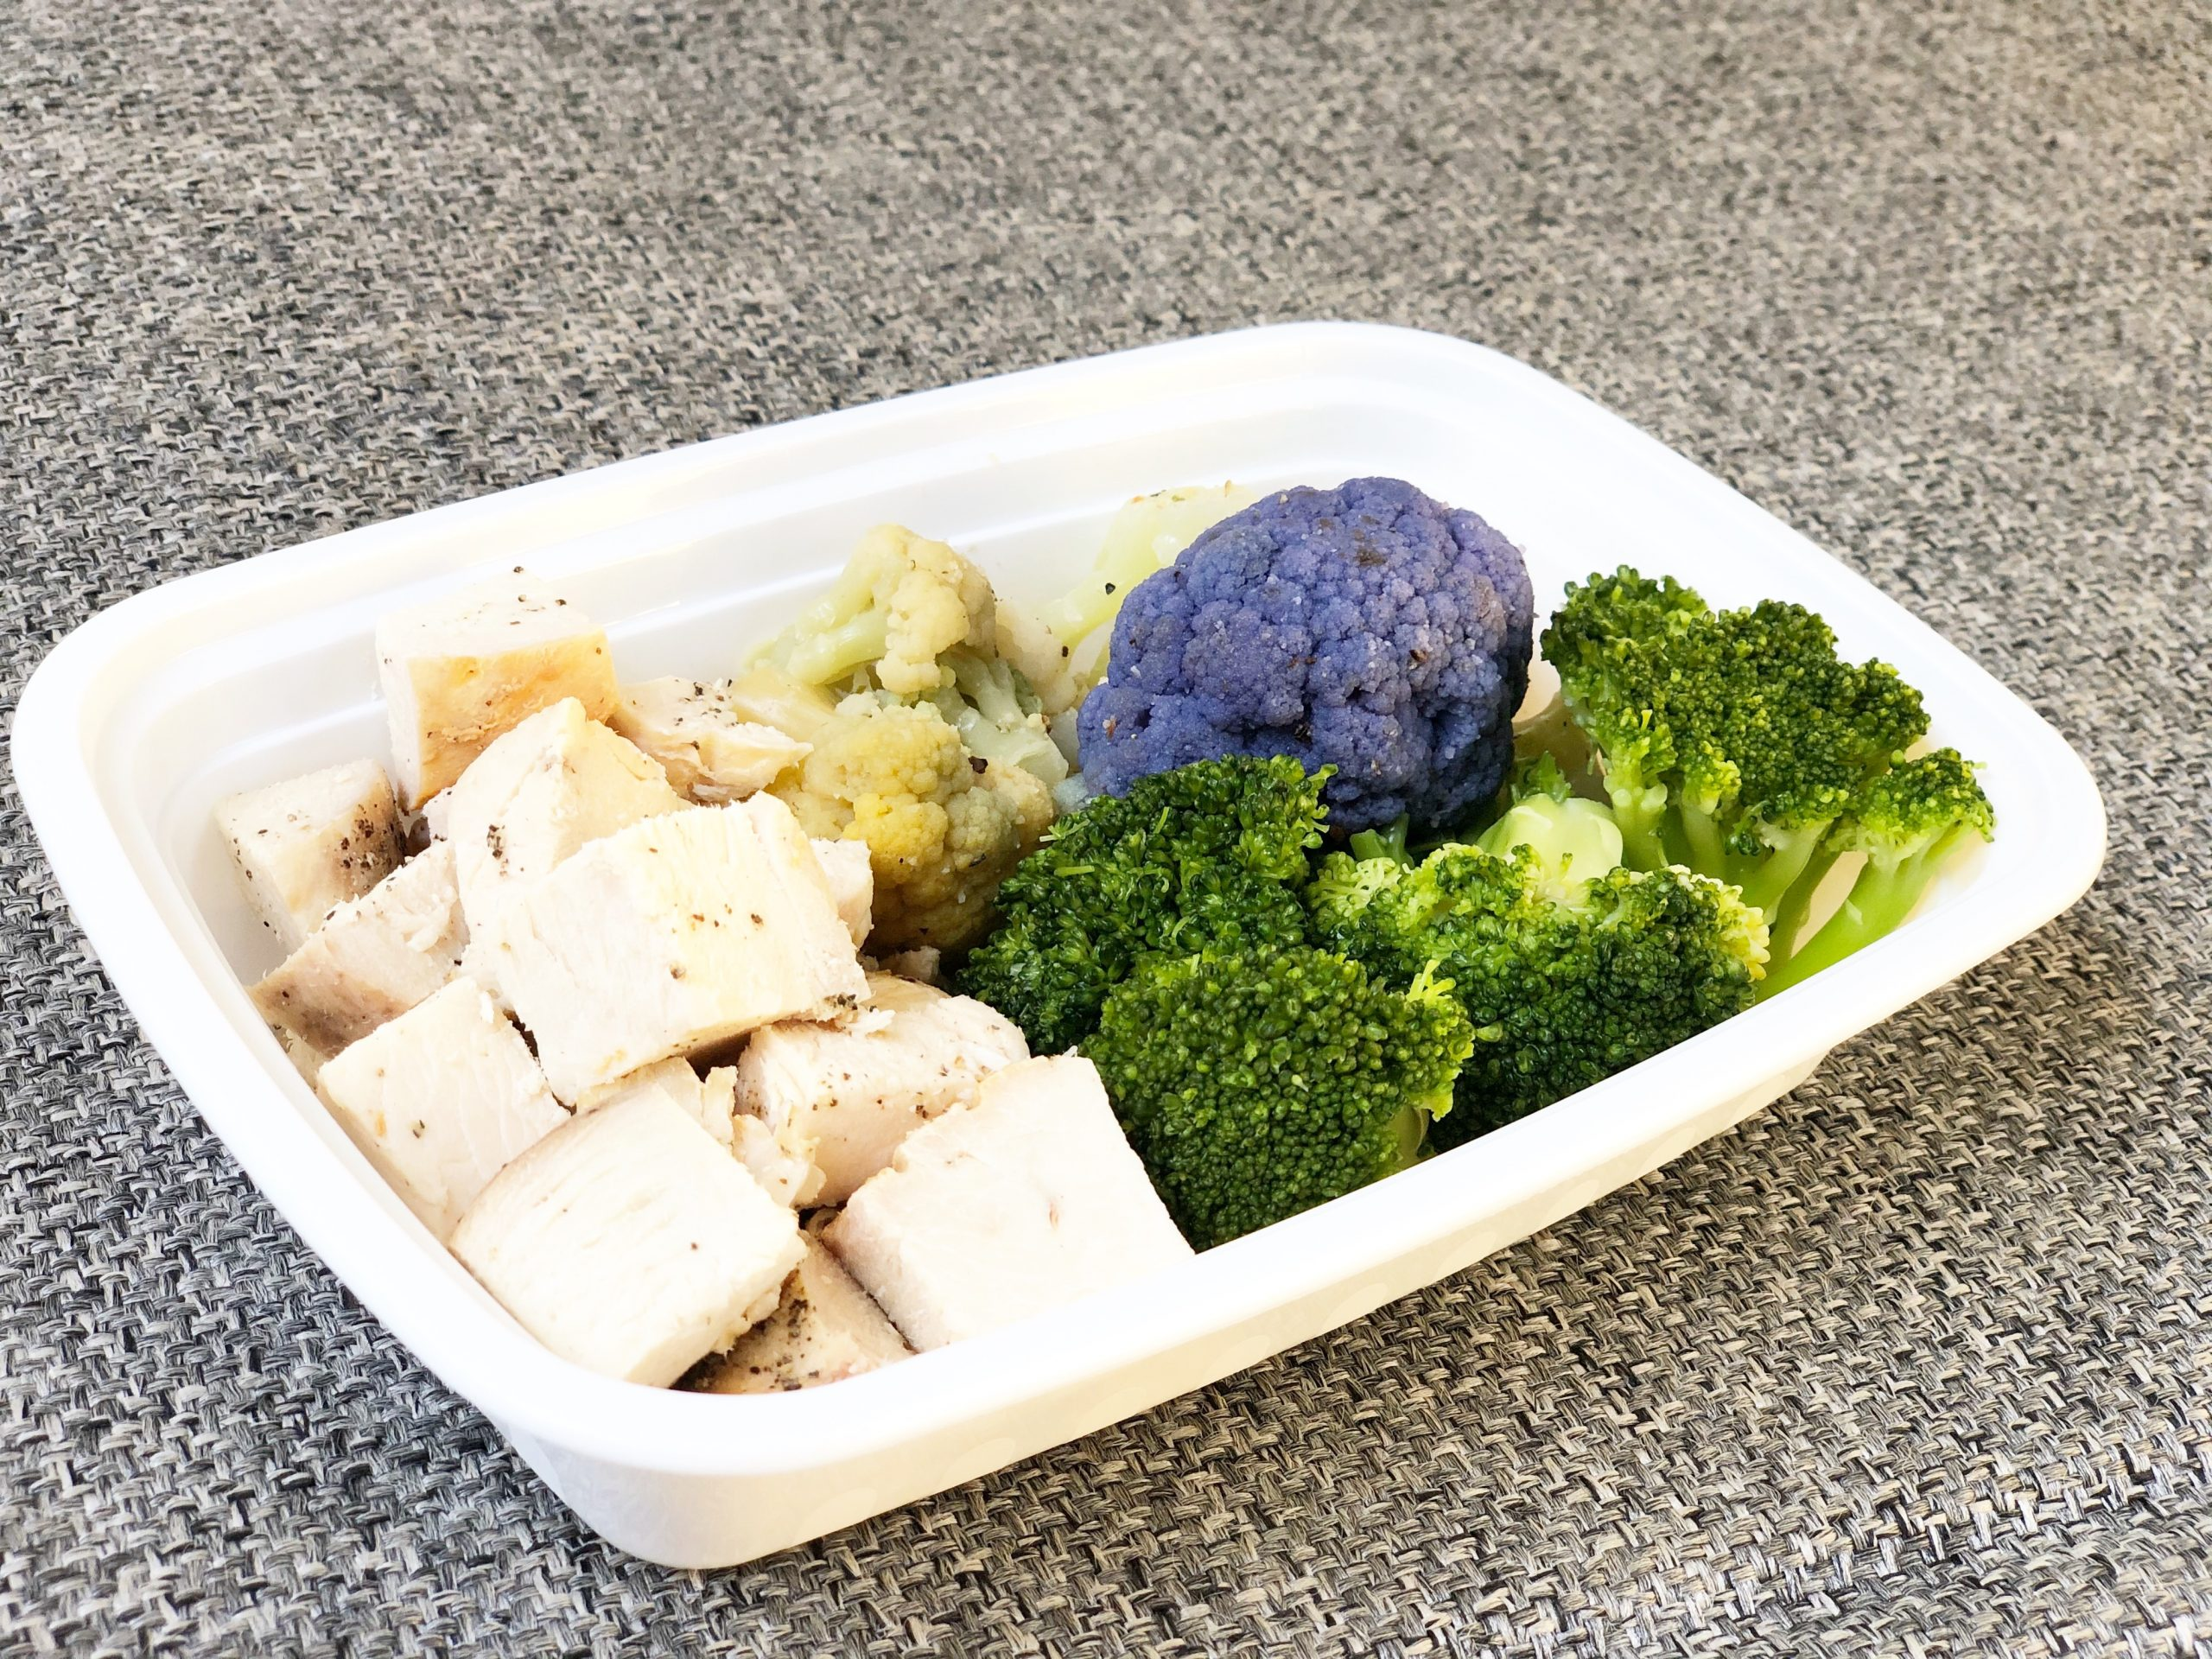 Chicken, broccoli, multi colored cauliflower